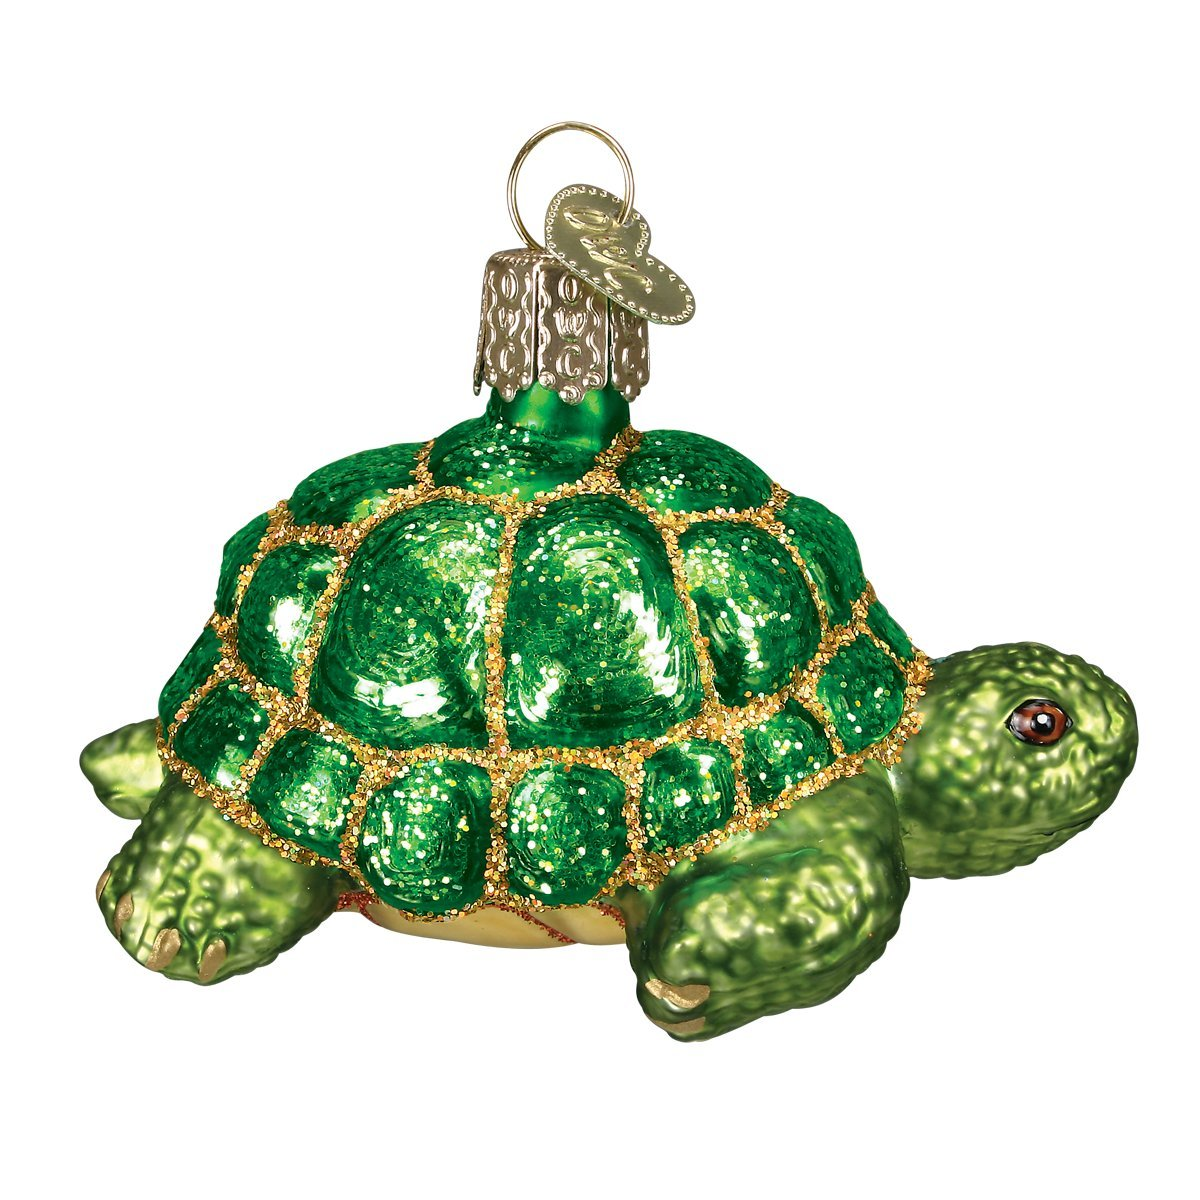 Amazon.com: Old World Christmas Desert Tortoise Glass Blown ...